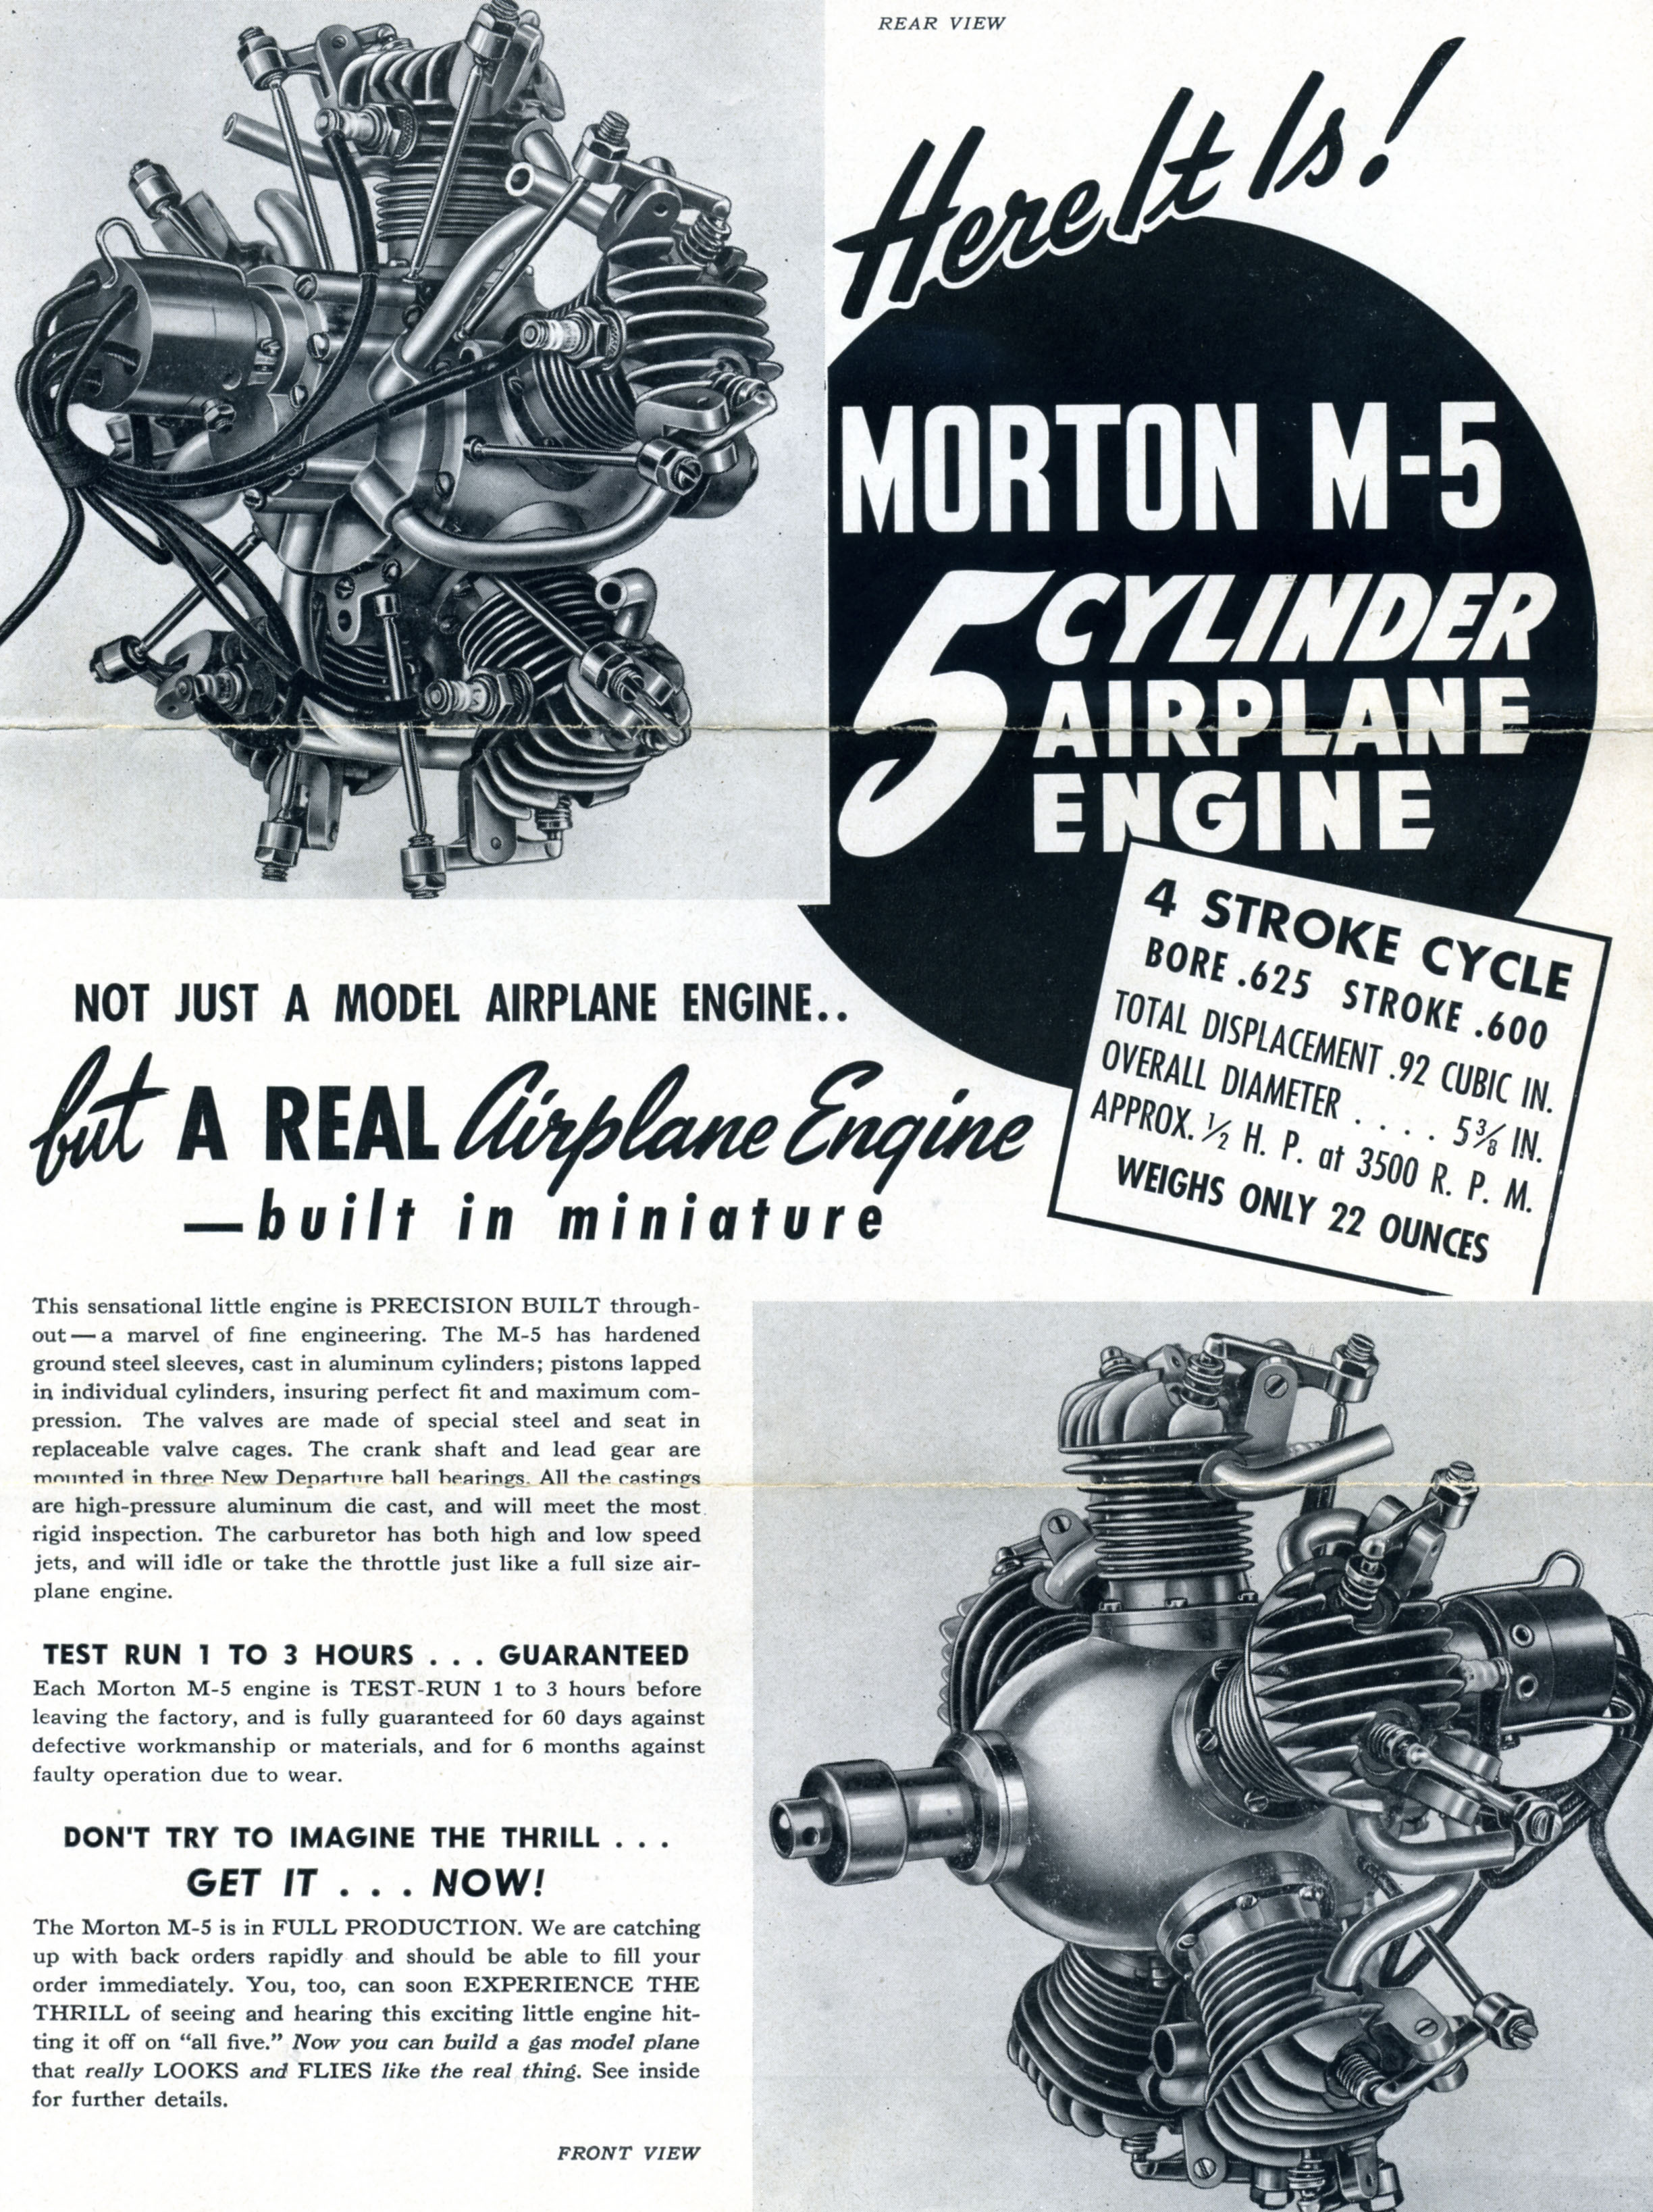 Advertisement brochure, Morton Aircraft Corporation, c. 1945. (Source: National Model Aviation Museum Archives, Manufacturers and Companies Collection #0043)